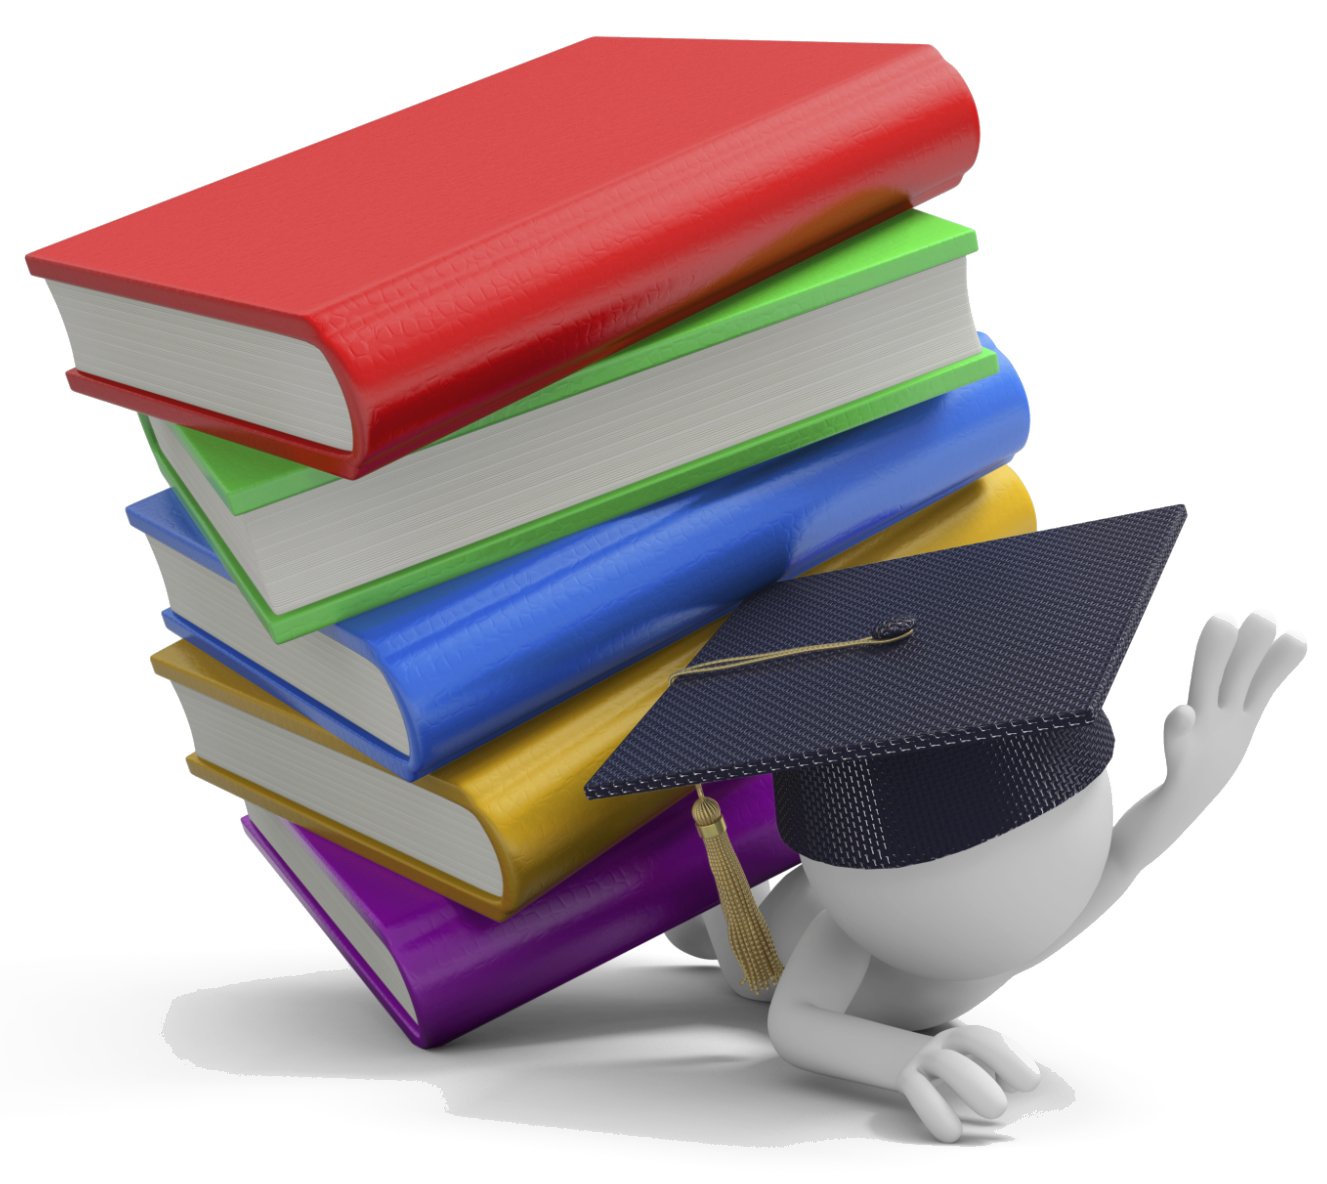 print or ebooks midwifery libguides at birmingham city university help your assignment